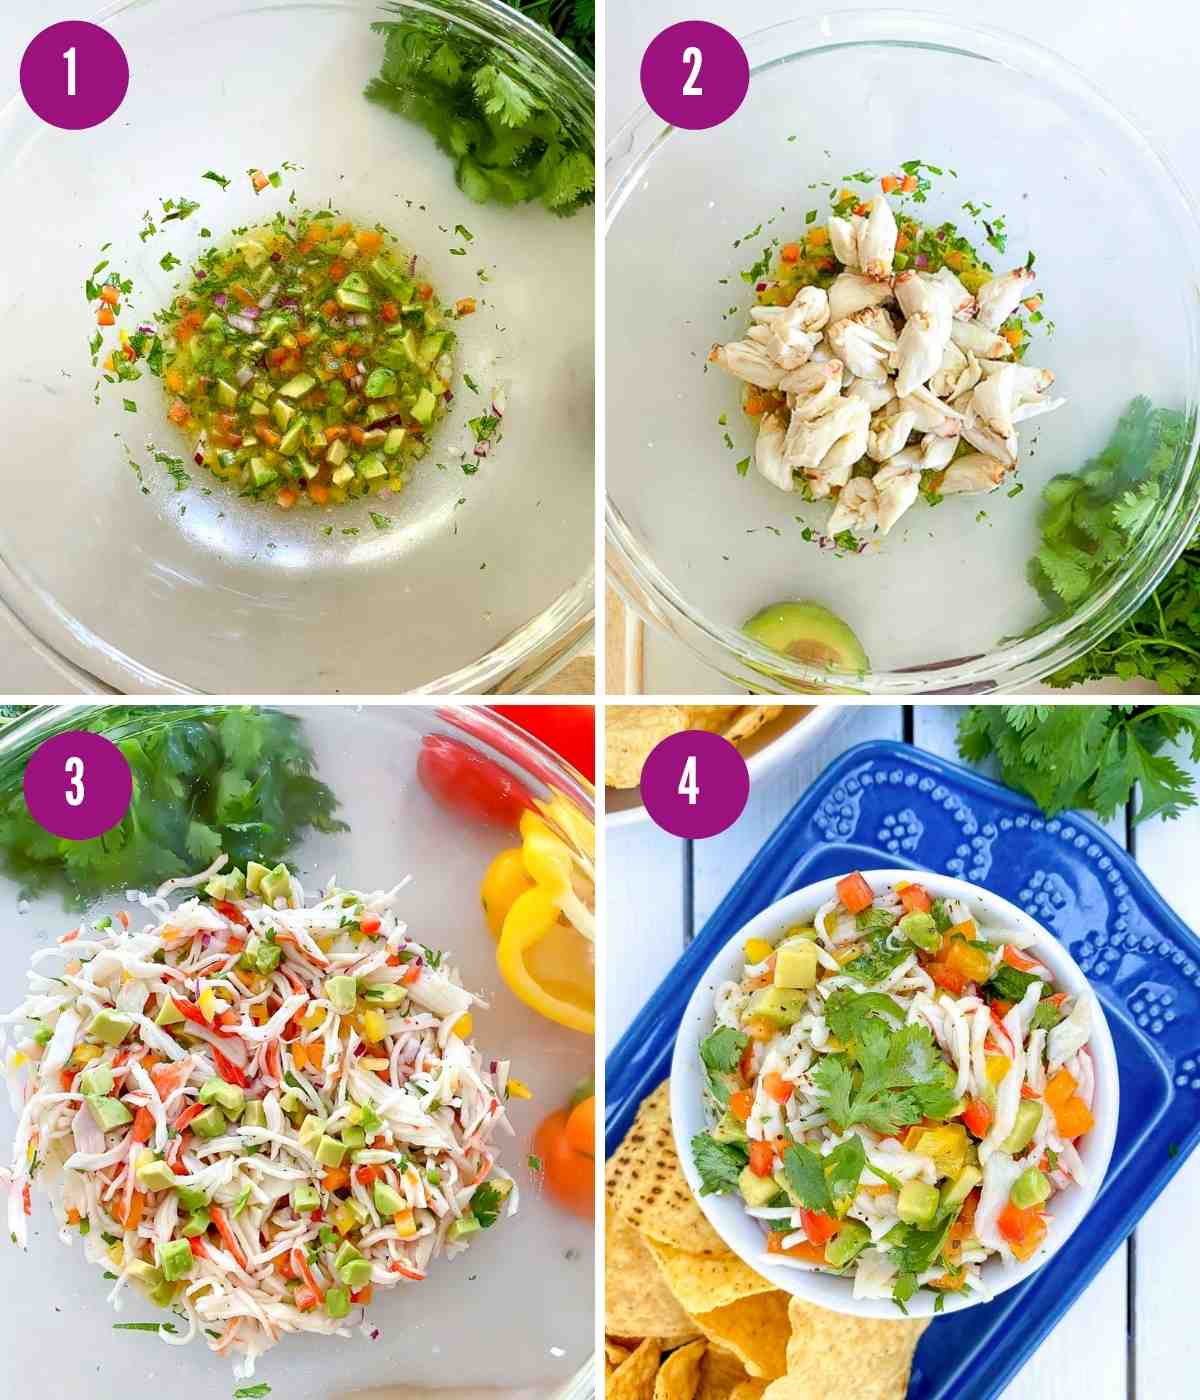 Steps showing how to prepare crab ceviche.